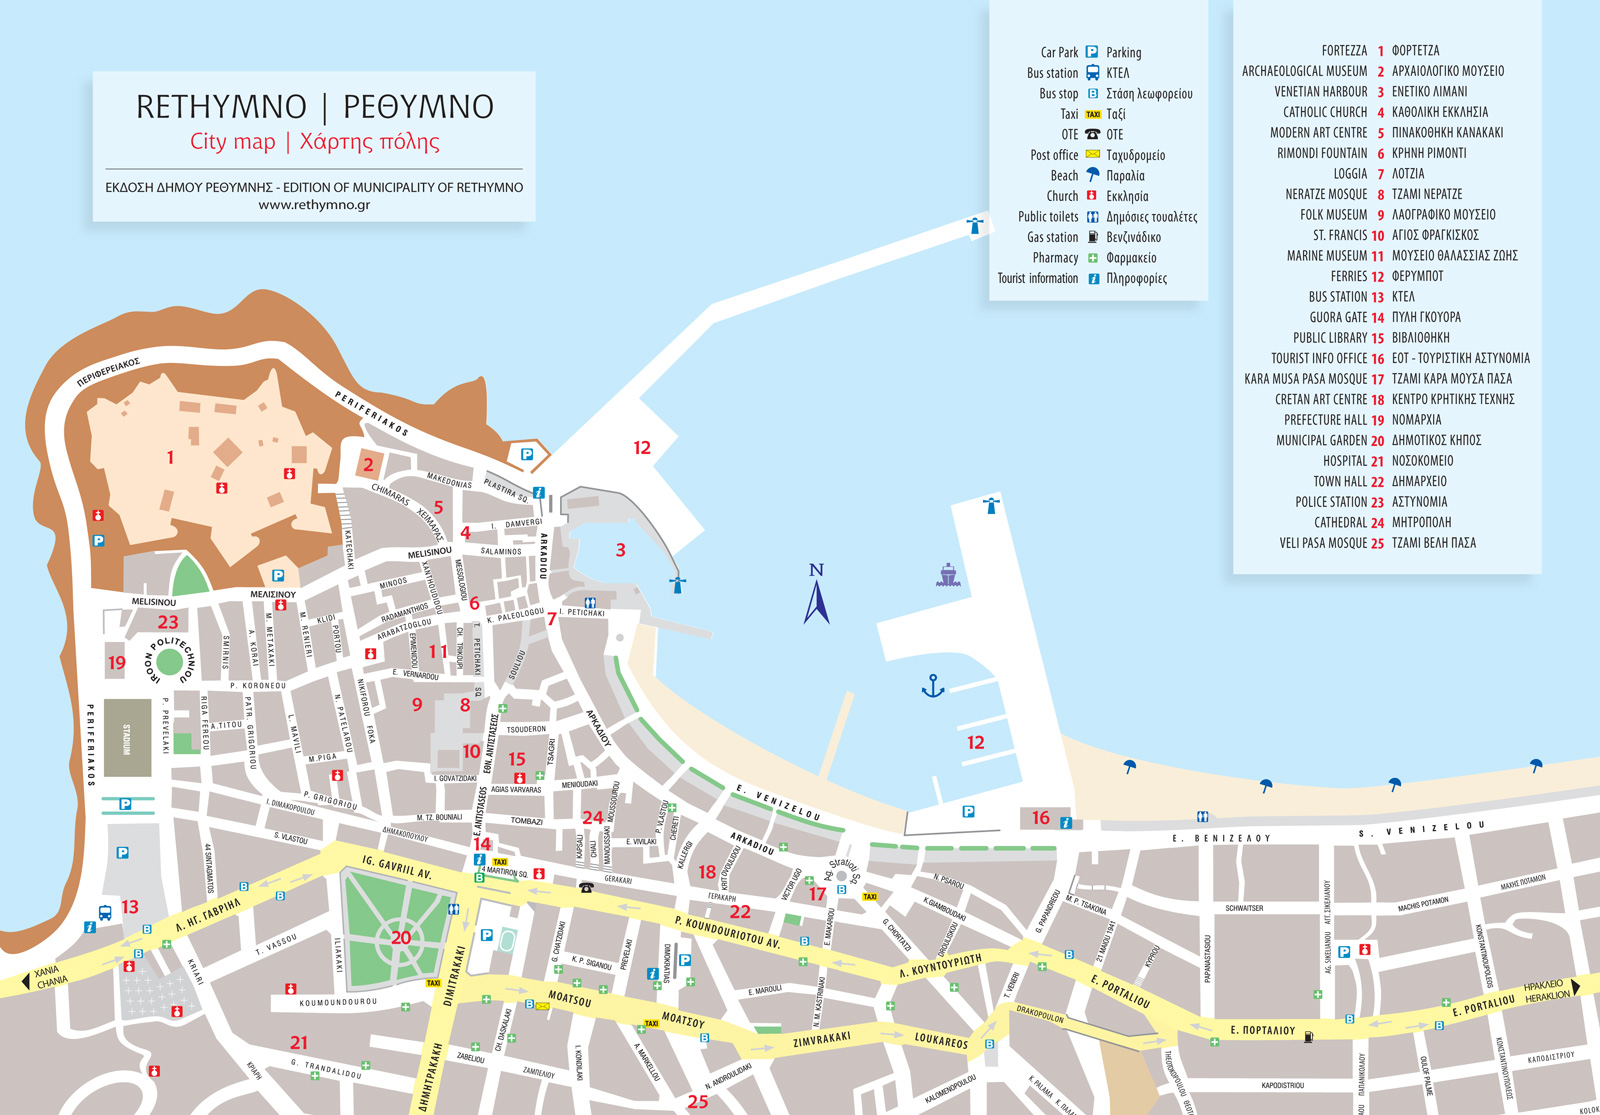 Rethymno Town map